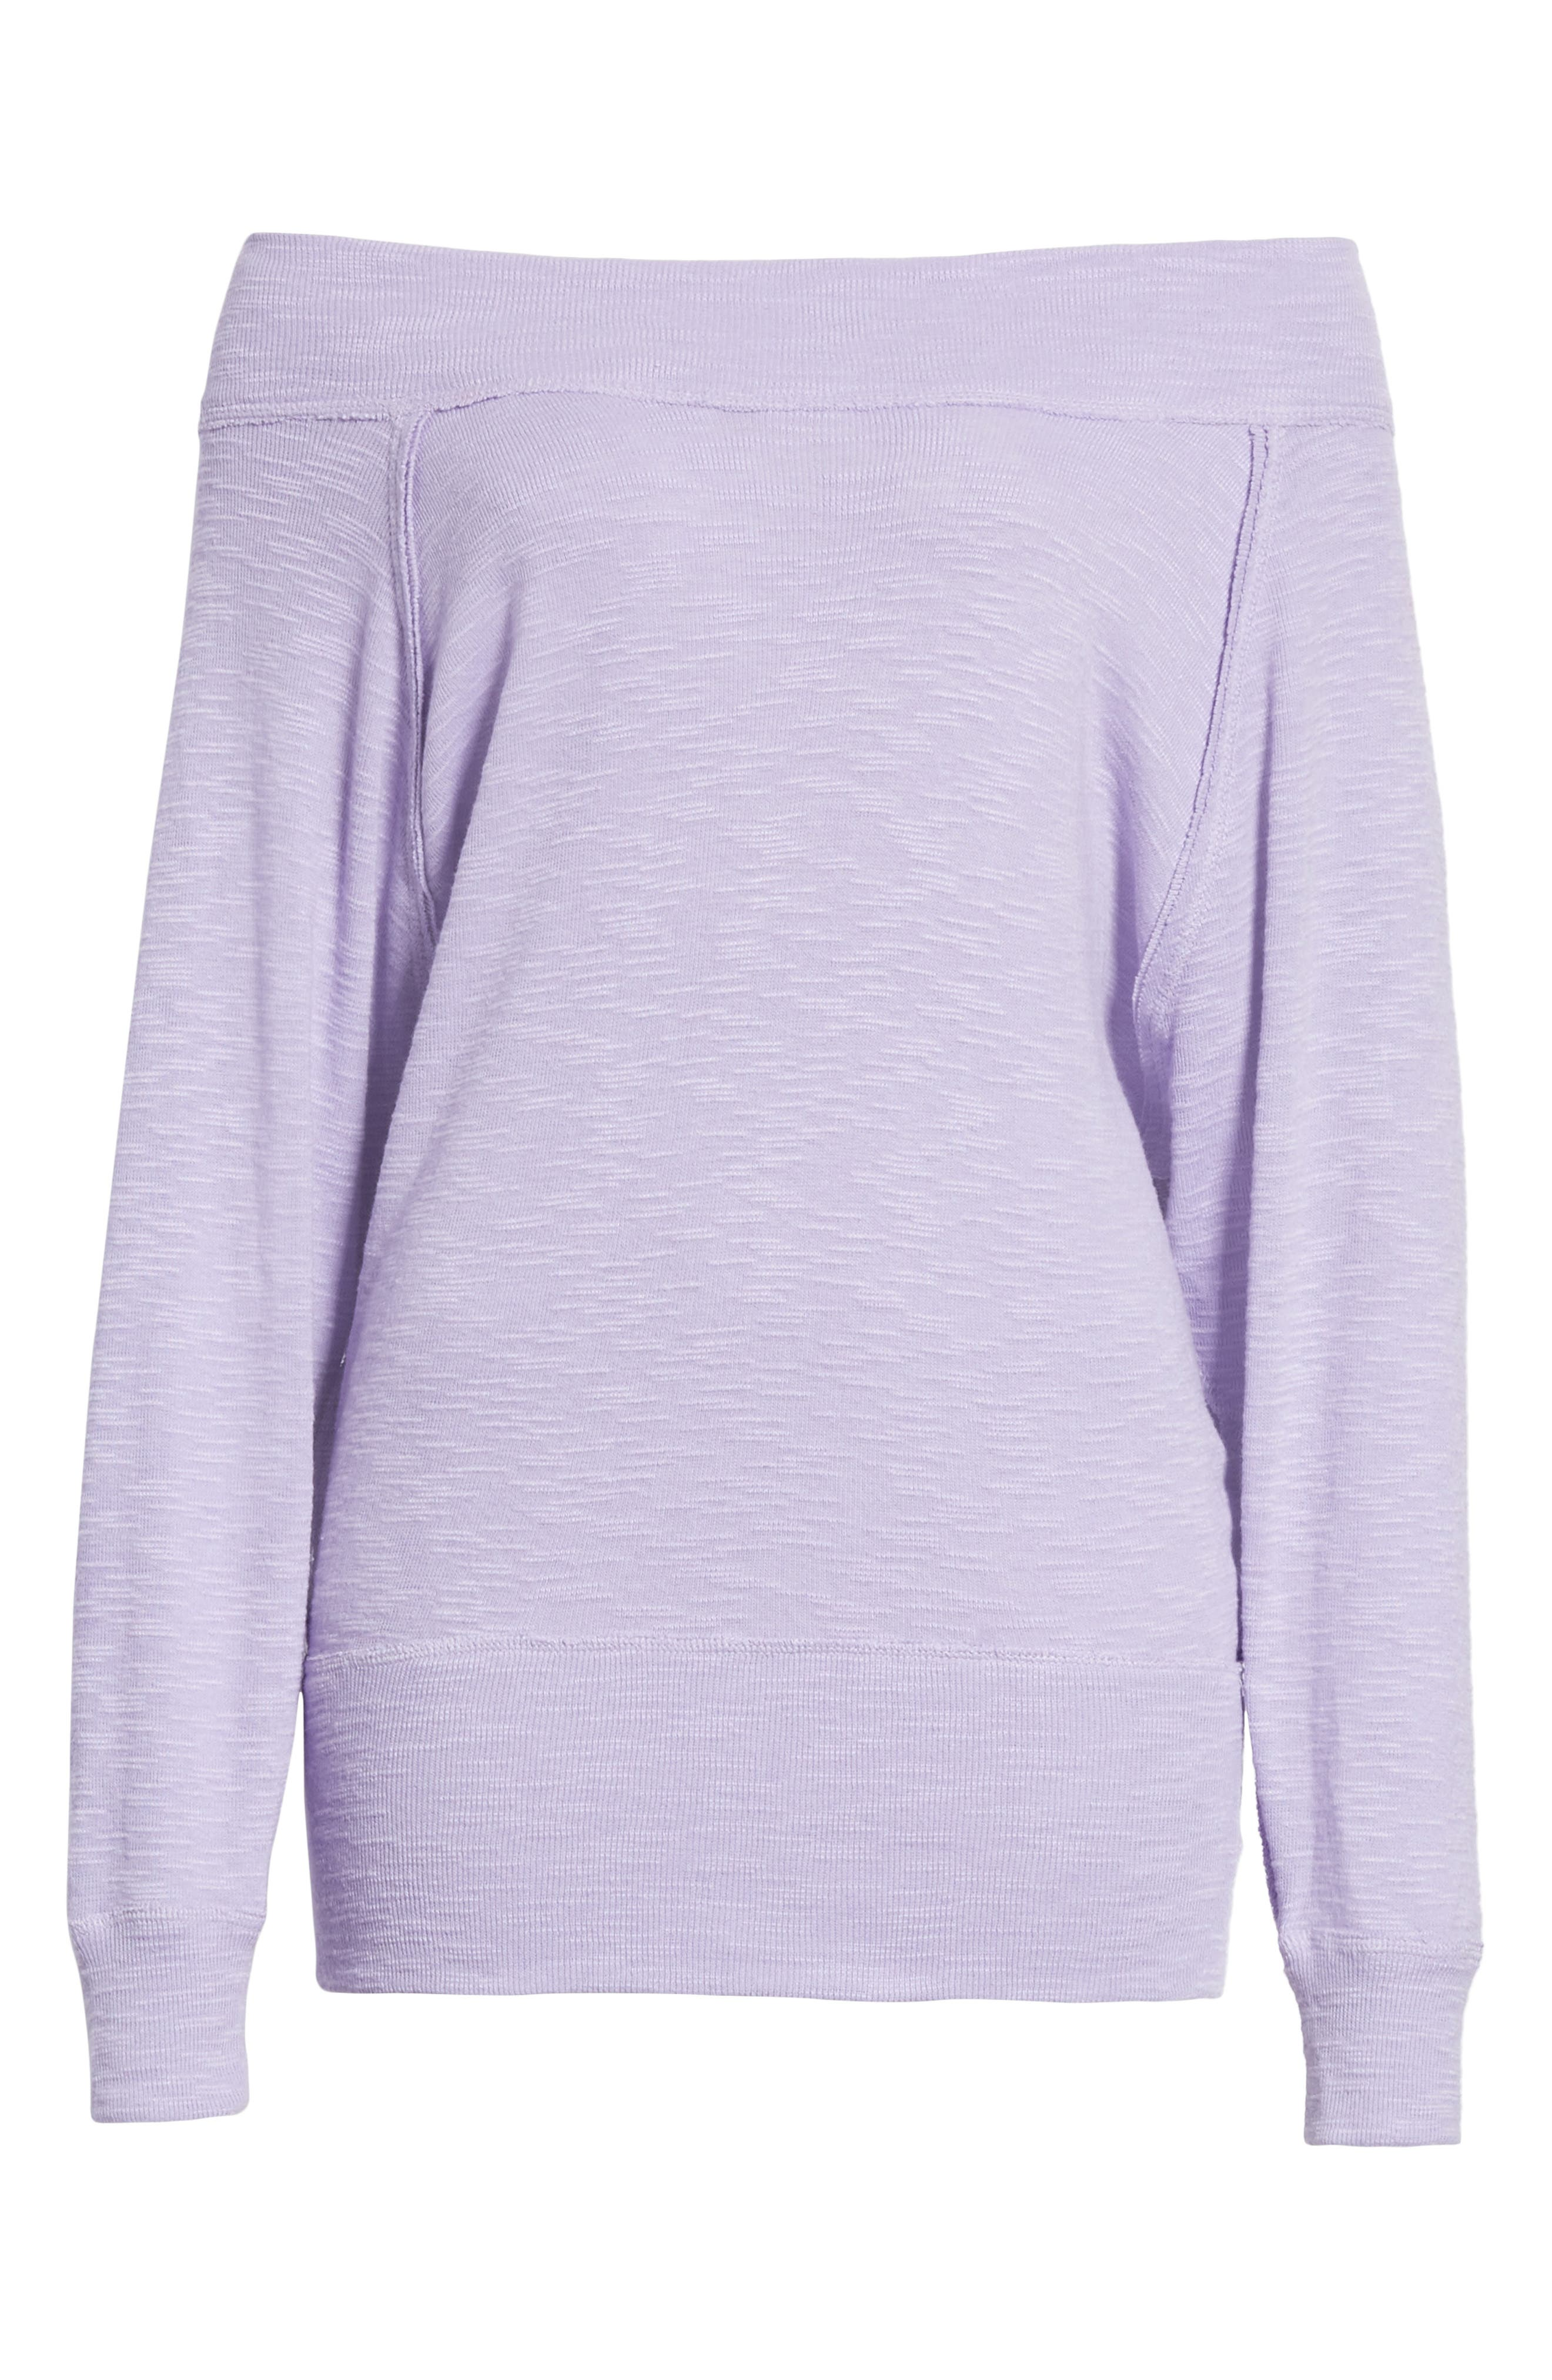 Palisades Off the Shoulder Top,                             Alternate thumbnail 6, color,                             Lilac